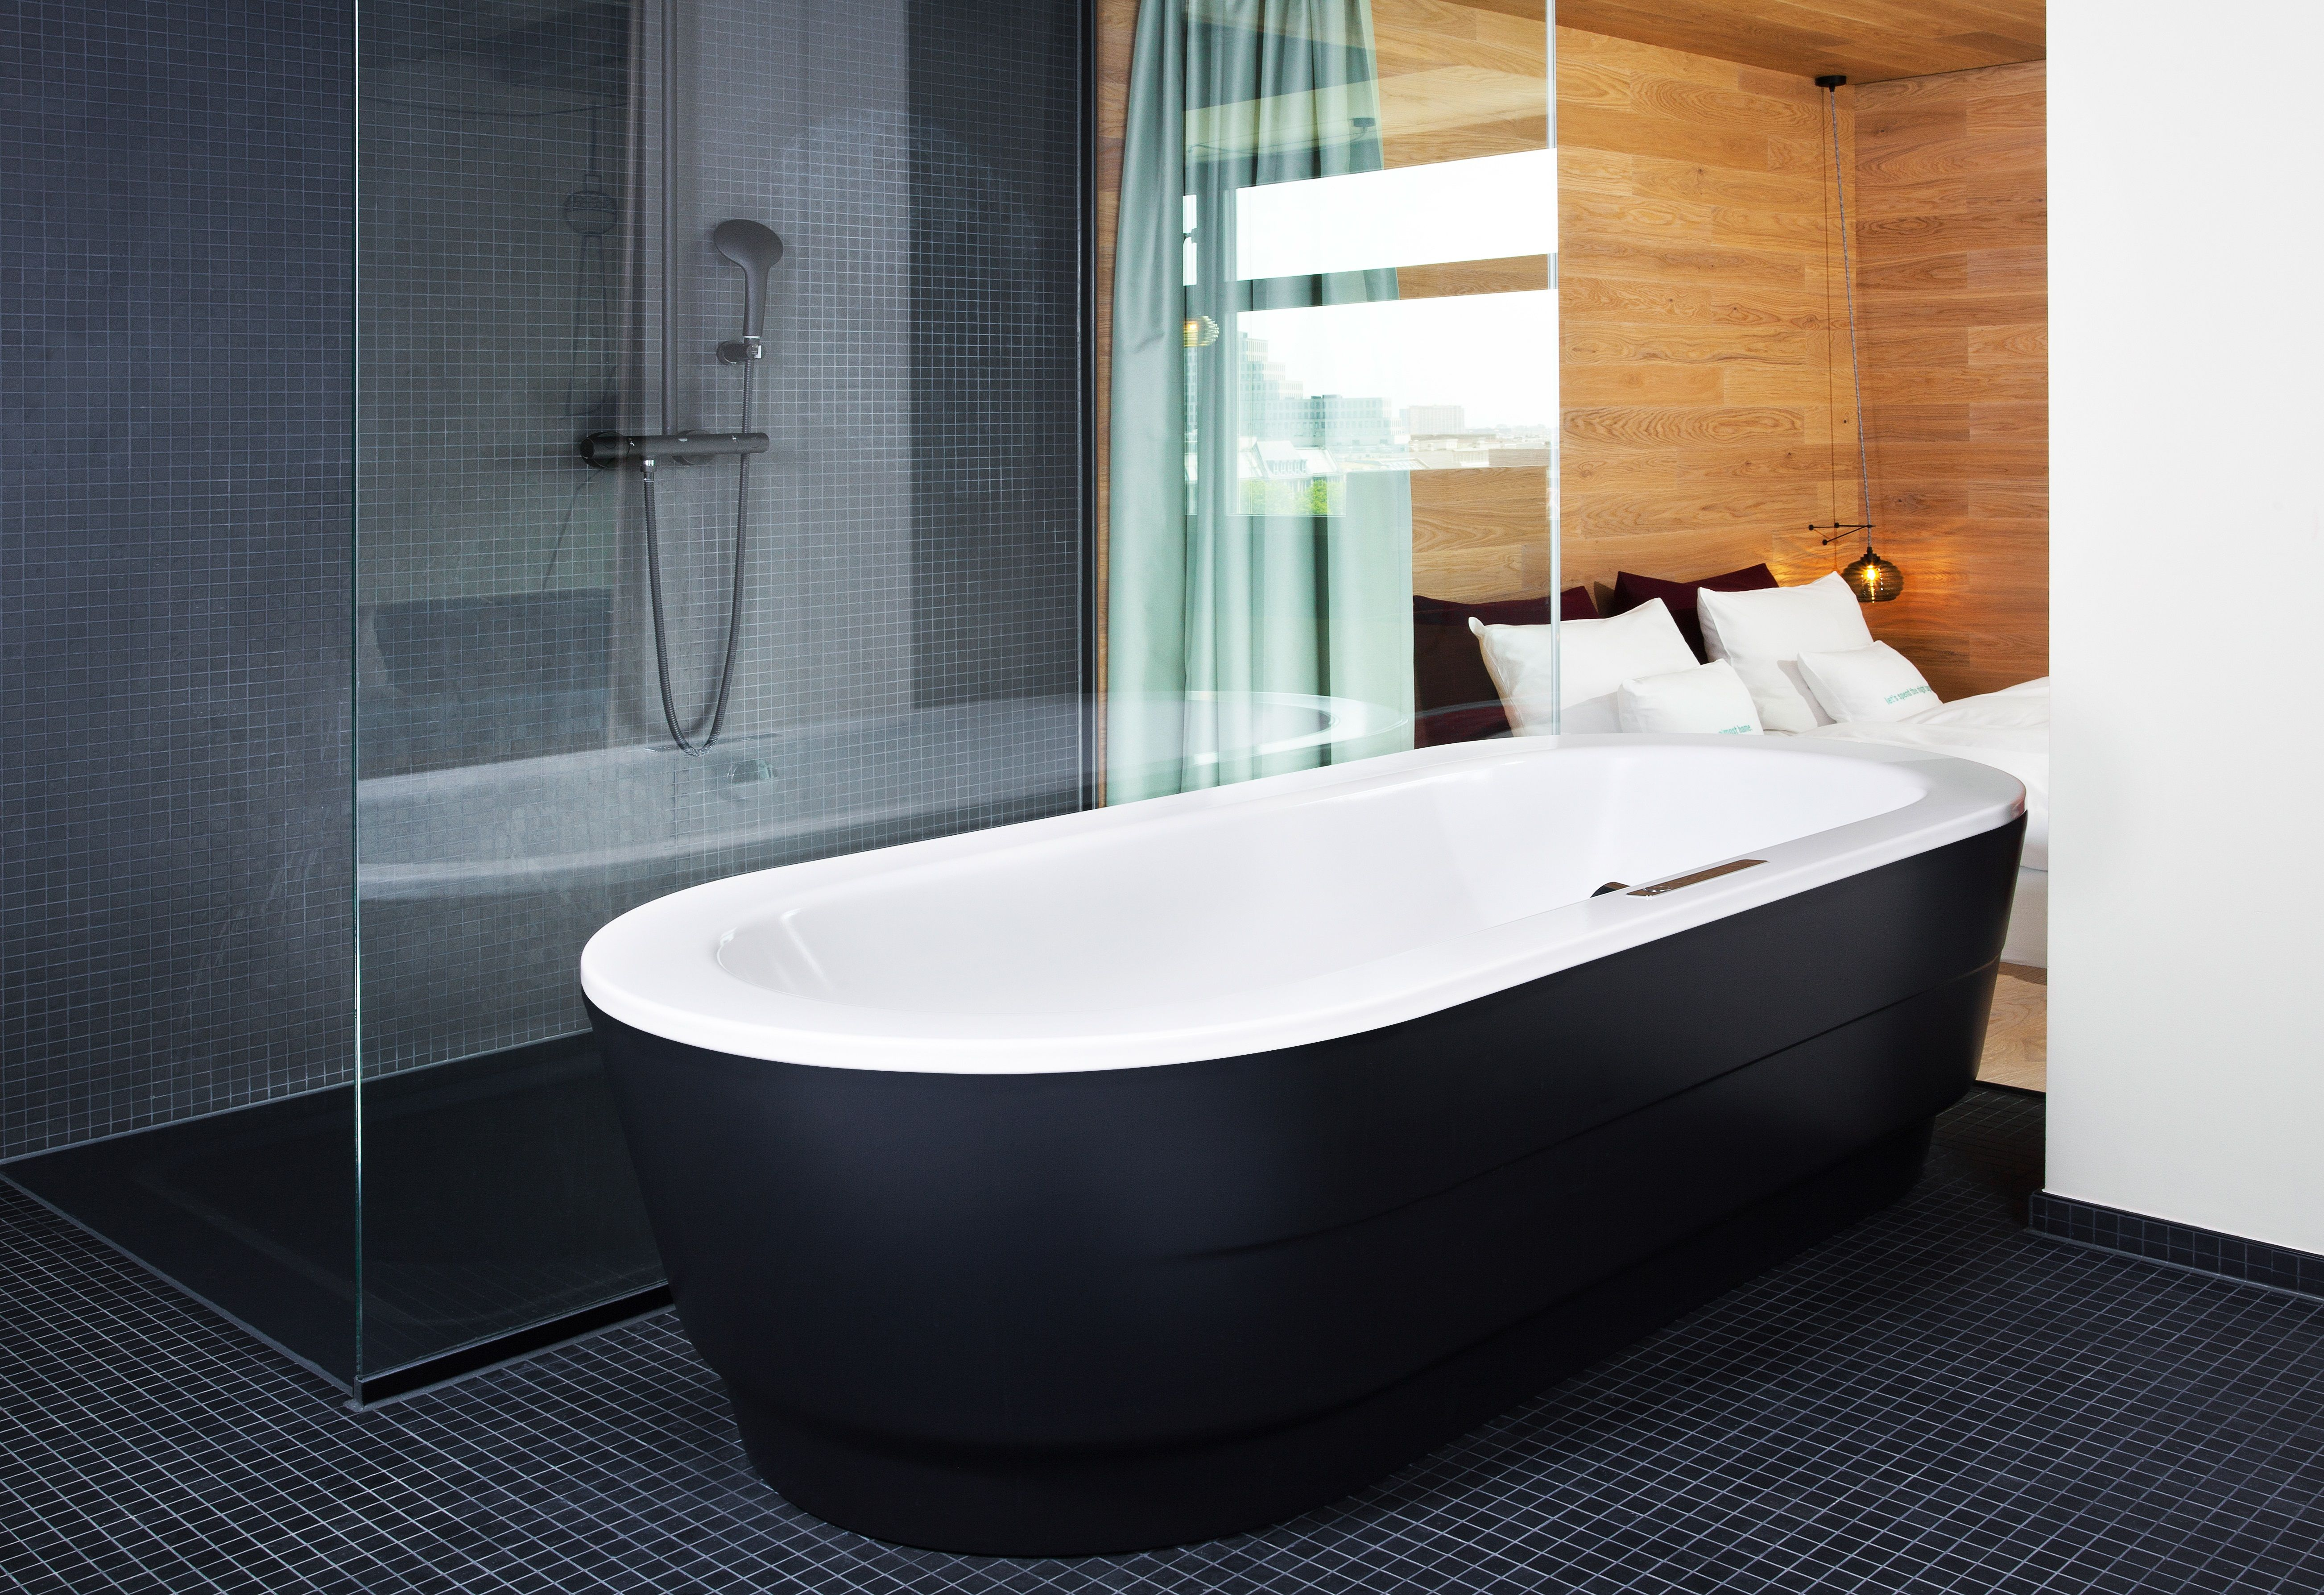 Kaldewei Offers Bath, Shower And Whirlpool Tub In The Avantgarde